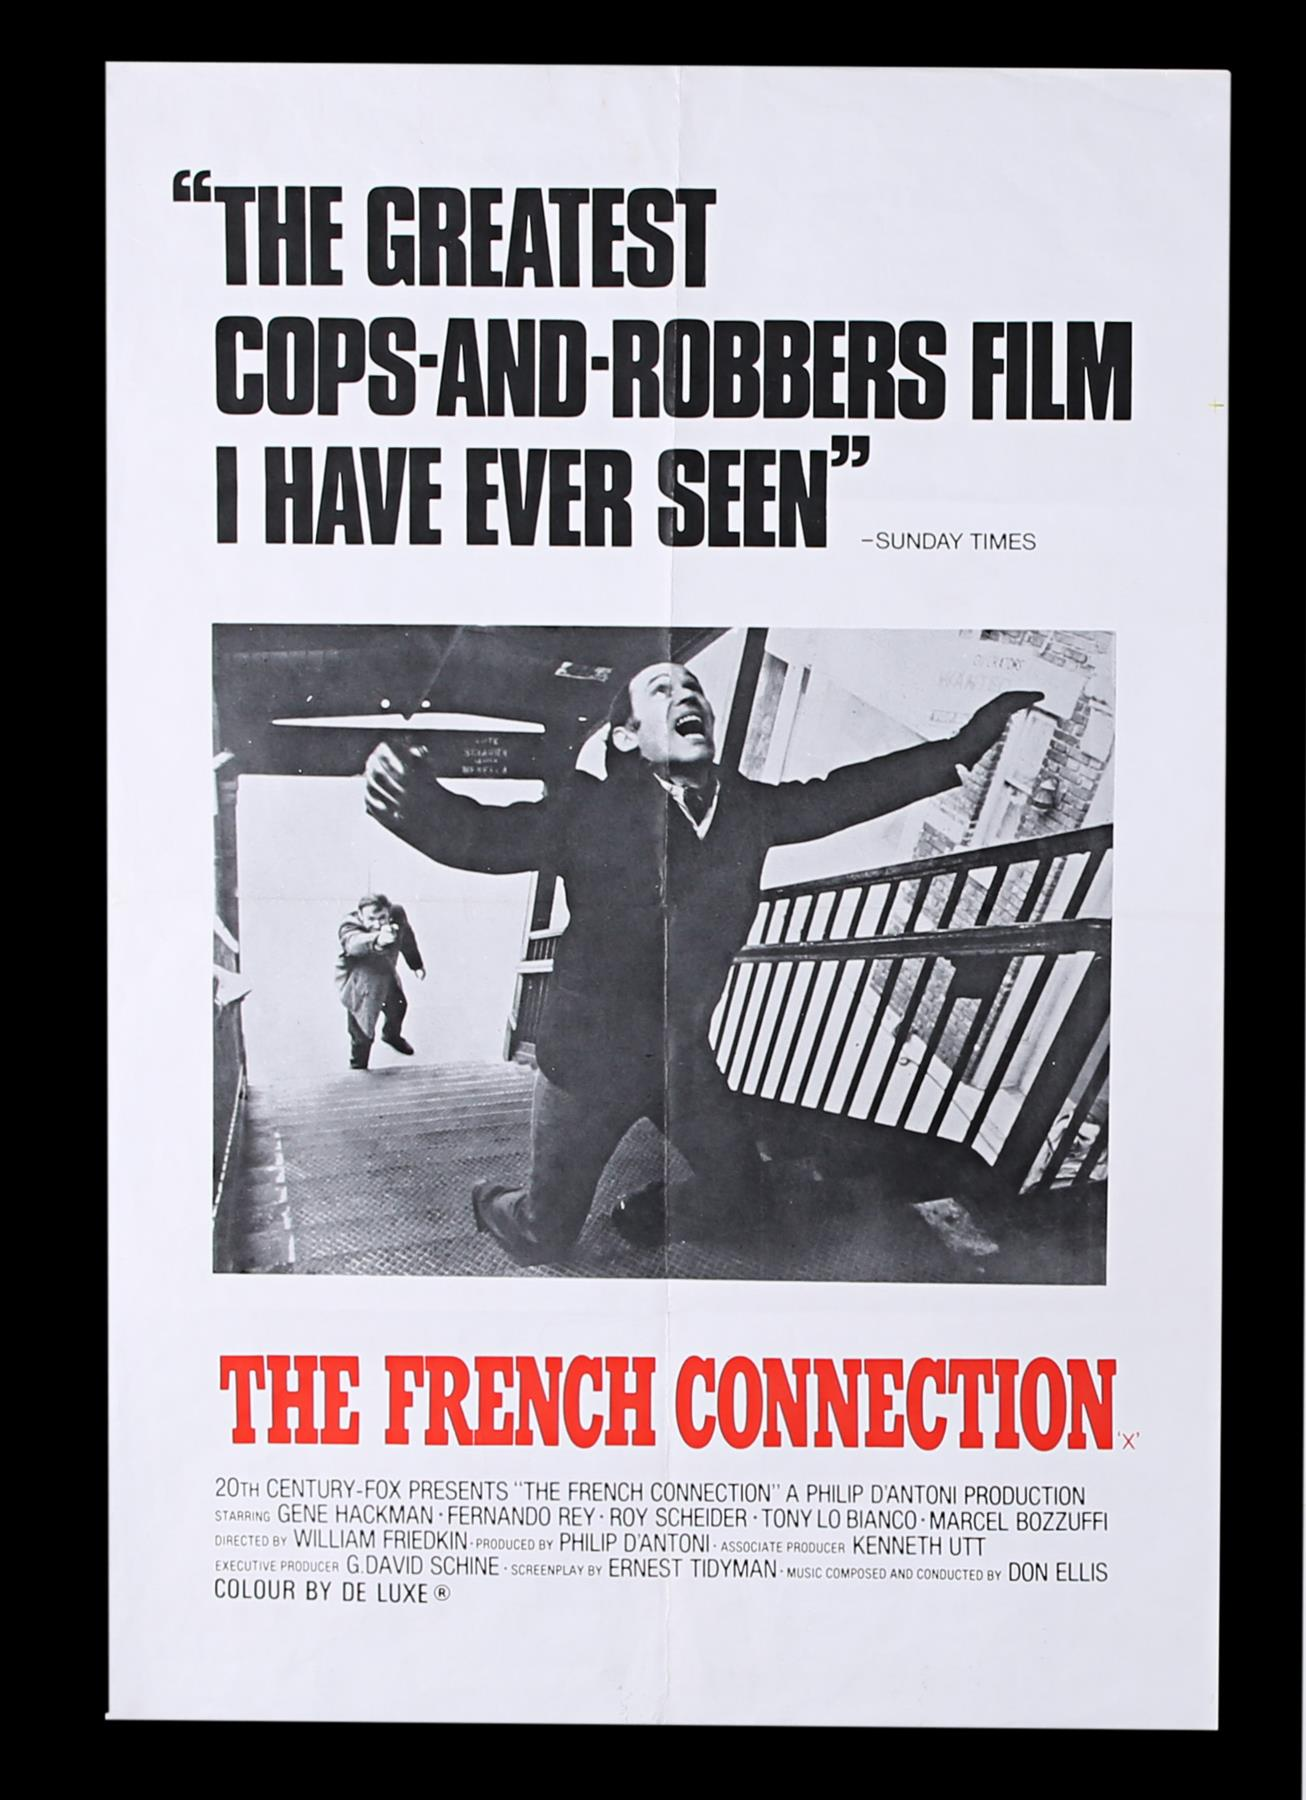 FRENCH CONNECTION (1971), CONVERSATION (1974) - UK Double Crown and US One-Sheet, 1971, 1974 - Image 6 of 8